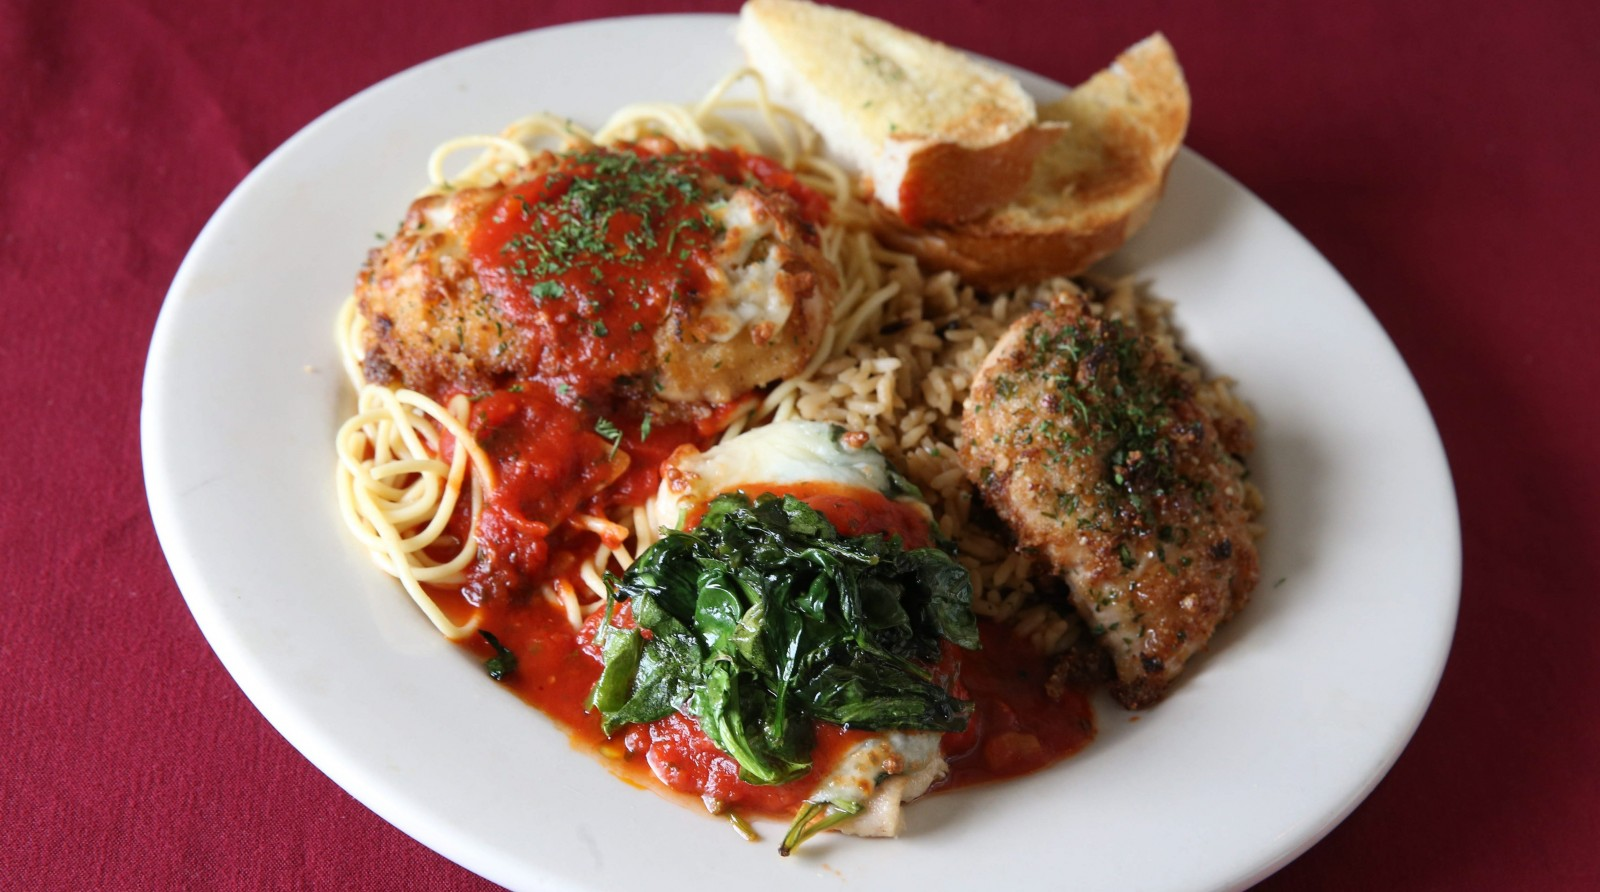 A combination of chicken Florentine, chicken Parmigiana and pecan crusted chicken over a bed of pasta, from Lombardi's. (Sharon Cantillon/Buffalo News)